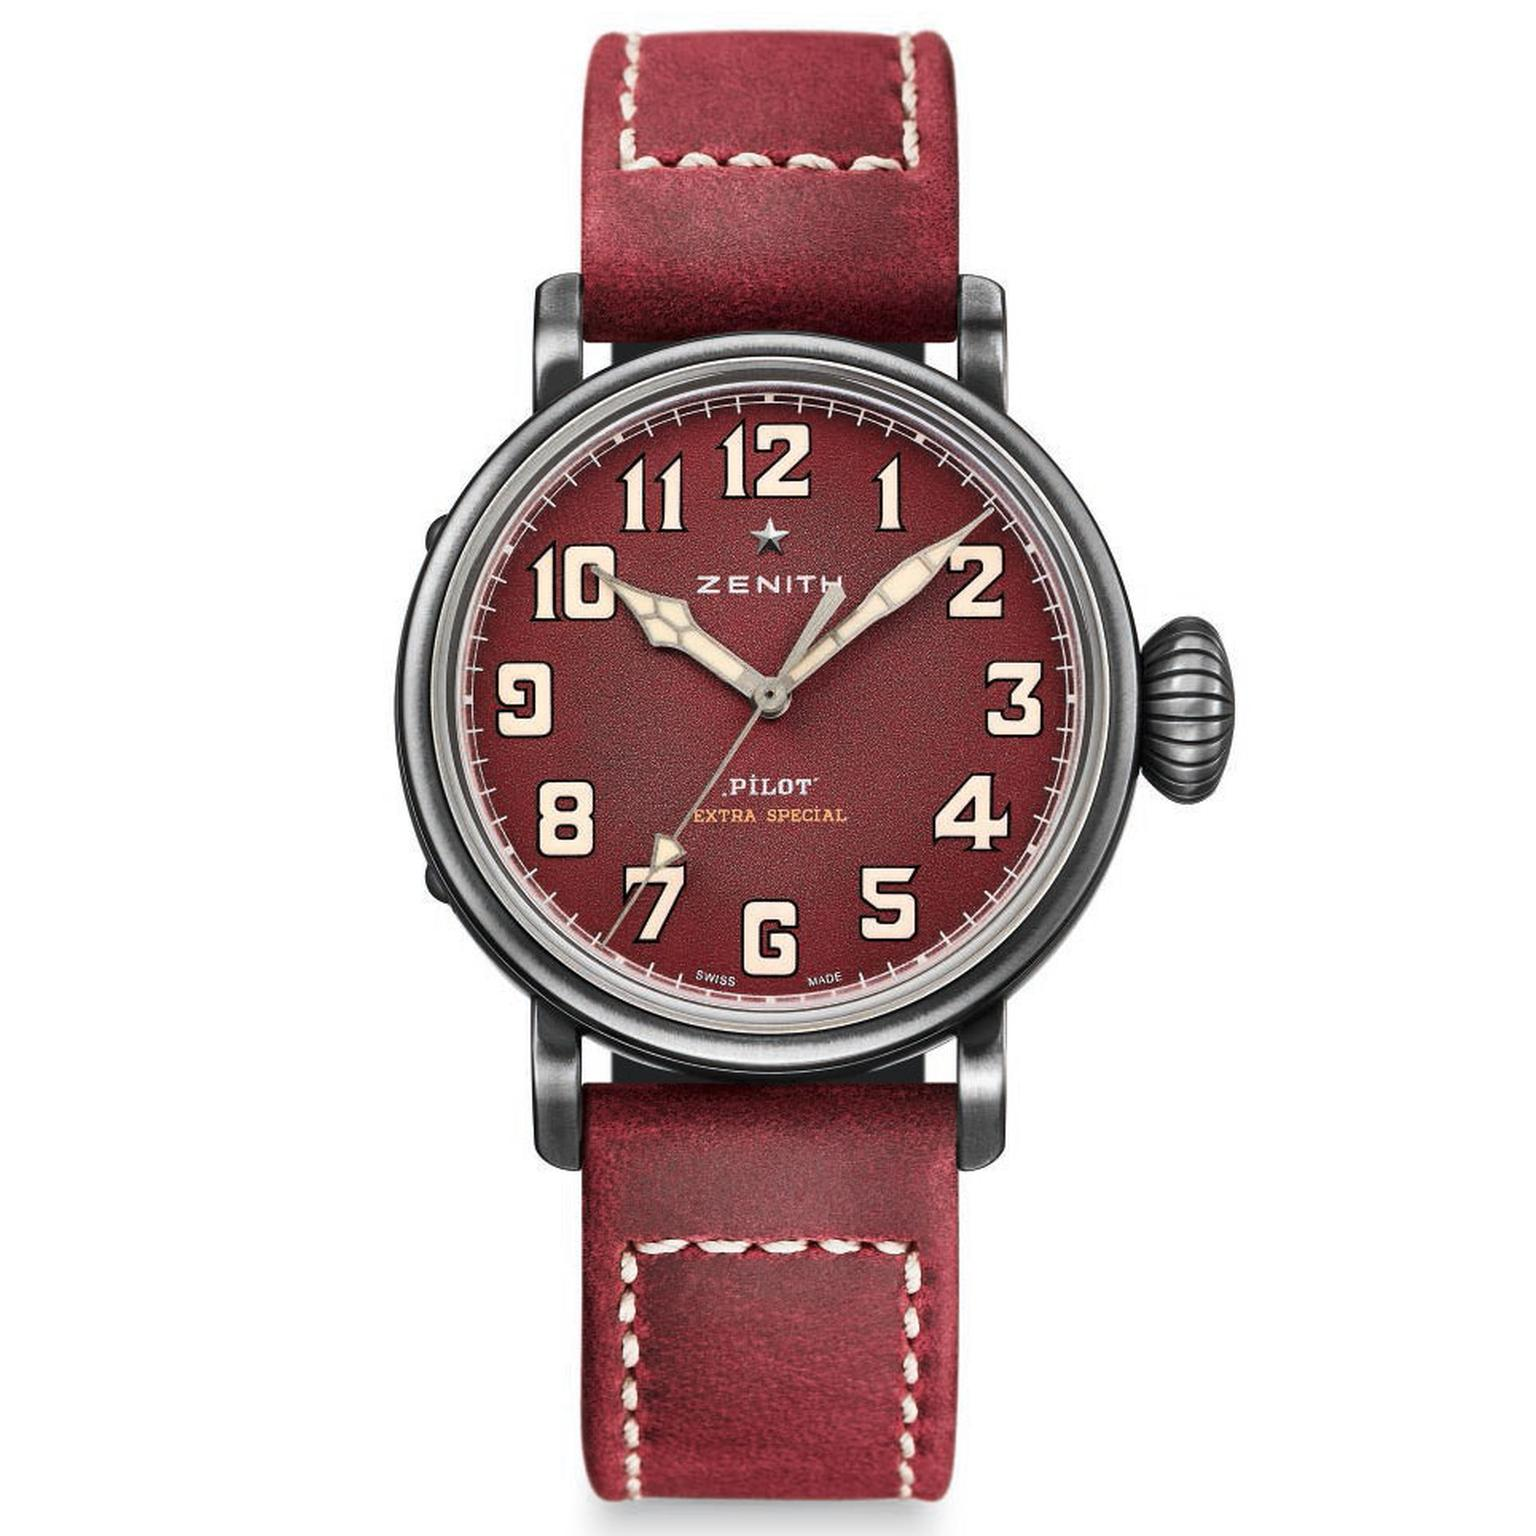 Zenith Pilot Type 20 Extra Special watch